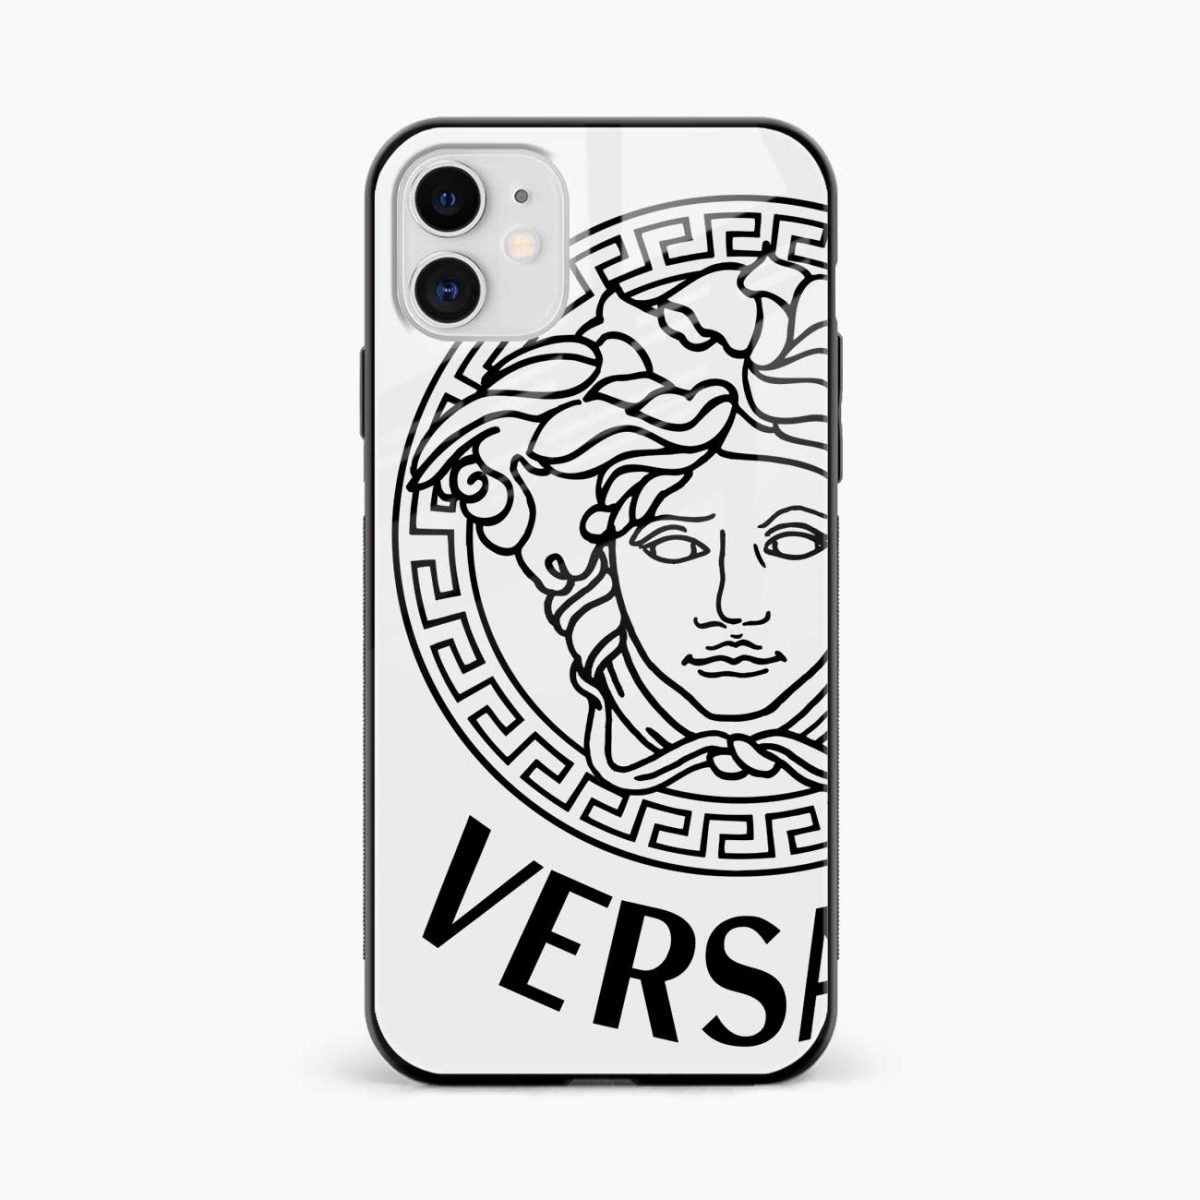 versace black white iphone back cover front view